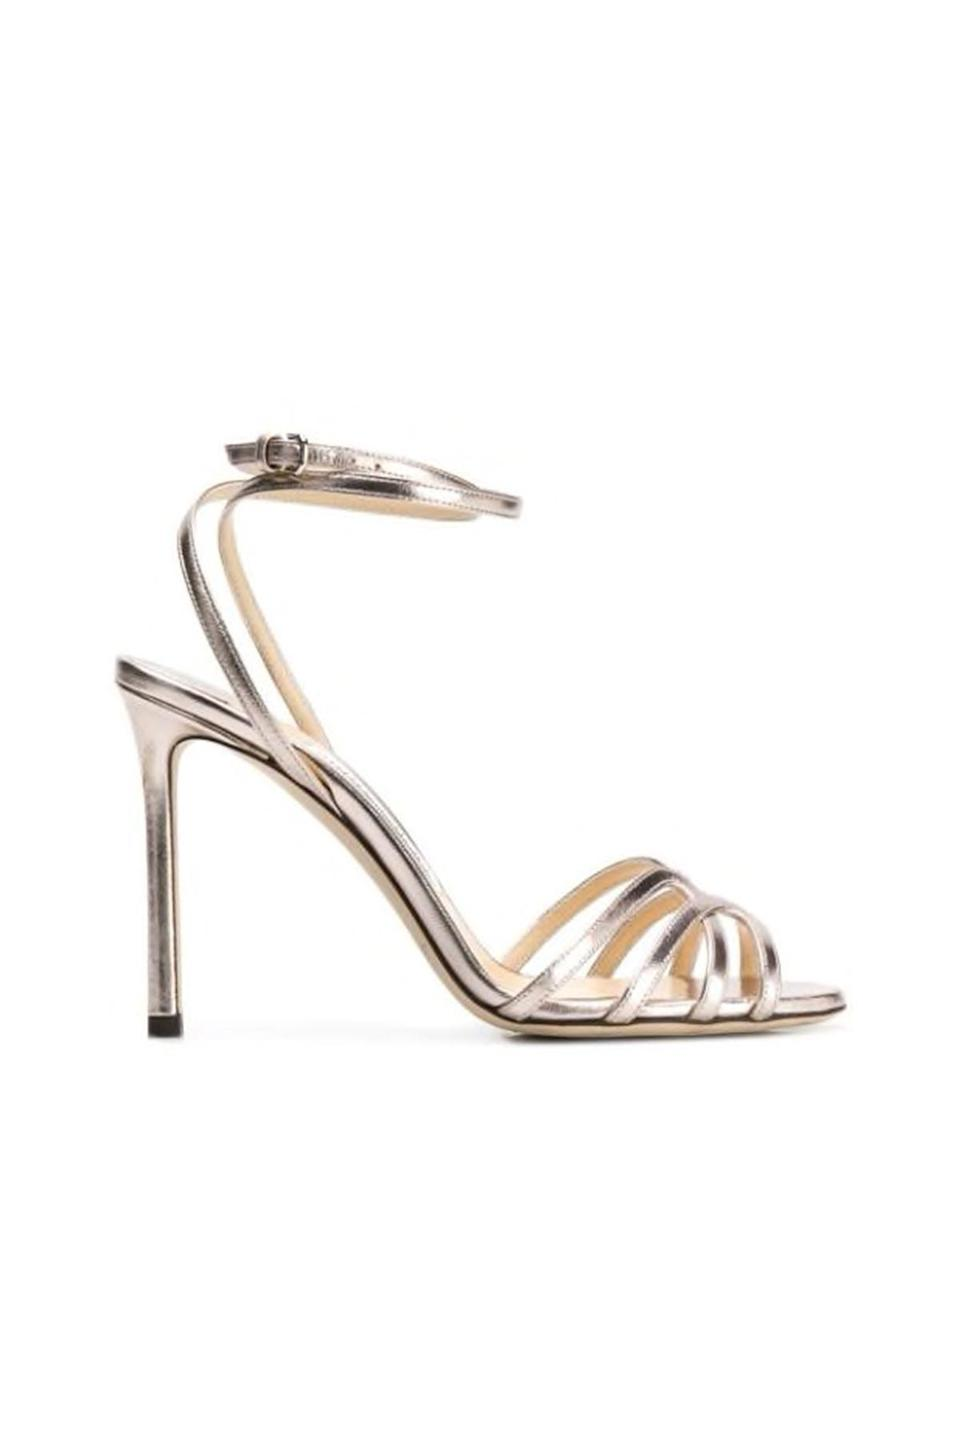 """<p><strong>Jimmy Choo</strong></p><p>farfetch.com</p><p><strong>$825.00</strong></p><p><a href=""""https://go.redirectingat.com?id=74968X1596630&url=https%3A%2F%2Fwww.farfetch.com%2Fshopping%2Fwomen%2Fjimmy-choo-platinum-mimi-100-sandals-item-13544599.aspx&sref=https%3A%2F%2Fwww.townandcountrymag.com%2Fstyle%2Ffashion-trends%2Fg36544376%2Fbest-metallic-accessories%2F"""" rel=""""nofollow noopener"""" target=""""_blank"""" data-ylk=""""slk:Shop Now"""" class=""""link rapid-noclick-resp"""">Shop Now</a></p><p>Is there anything more glamorous than sky high silver Jimmy Choos? Obviously not. If you can only splurge on one pair, a metallic like silver will go farther than basic black, as it looks great with every color. </p>"""